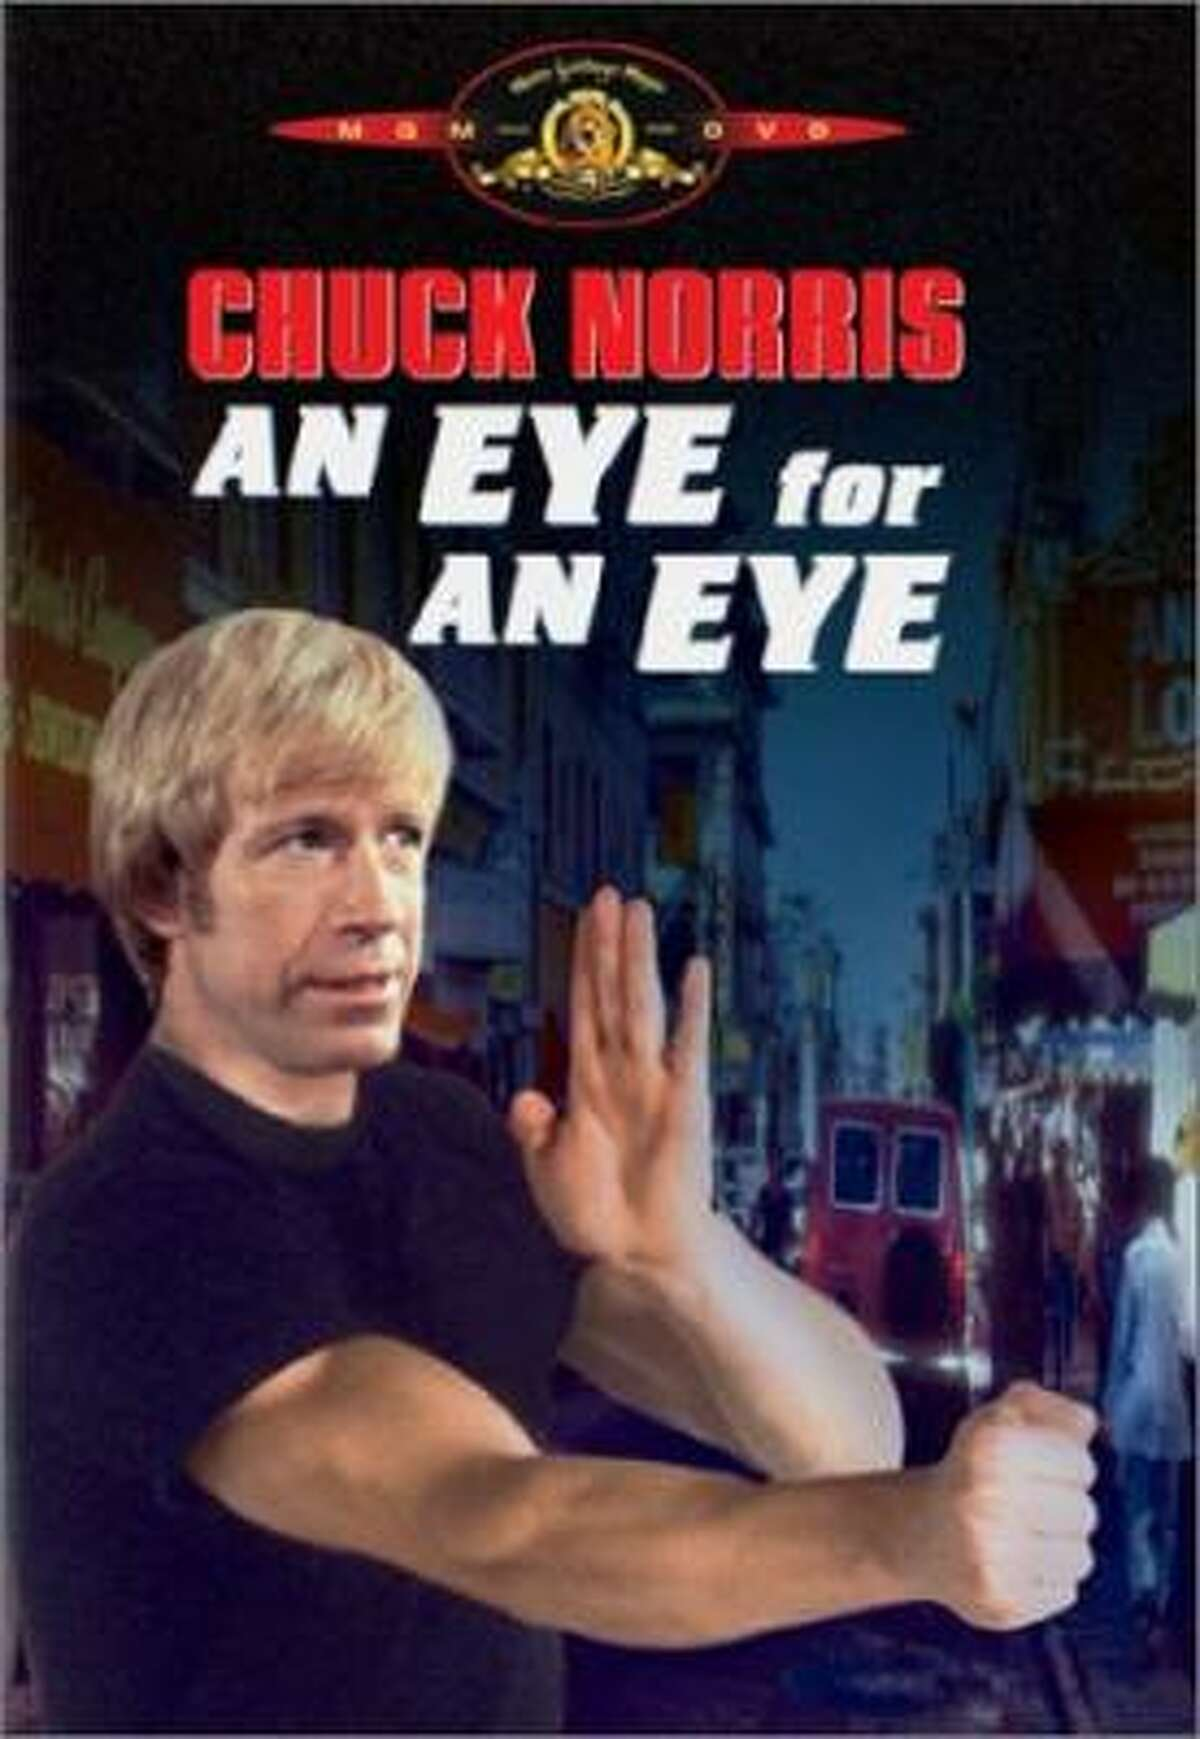 An Eye for an Eye (1981) Tagline: Chuck Norris doesn't need a weapon... he is a weapon!